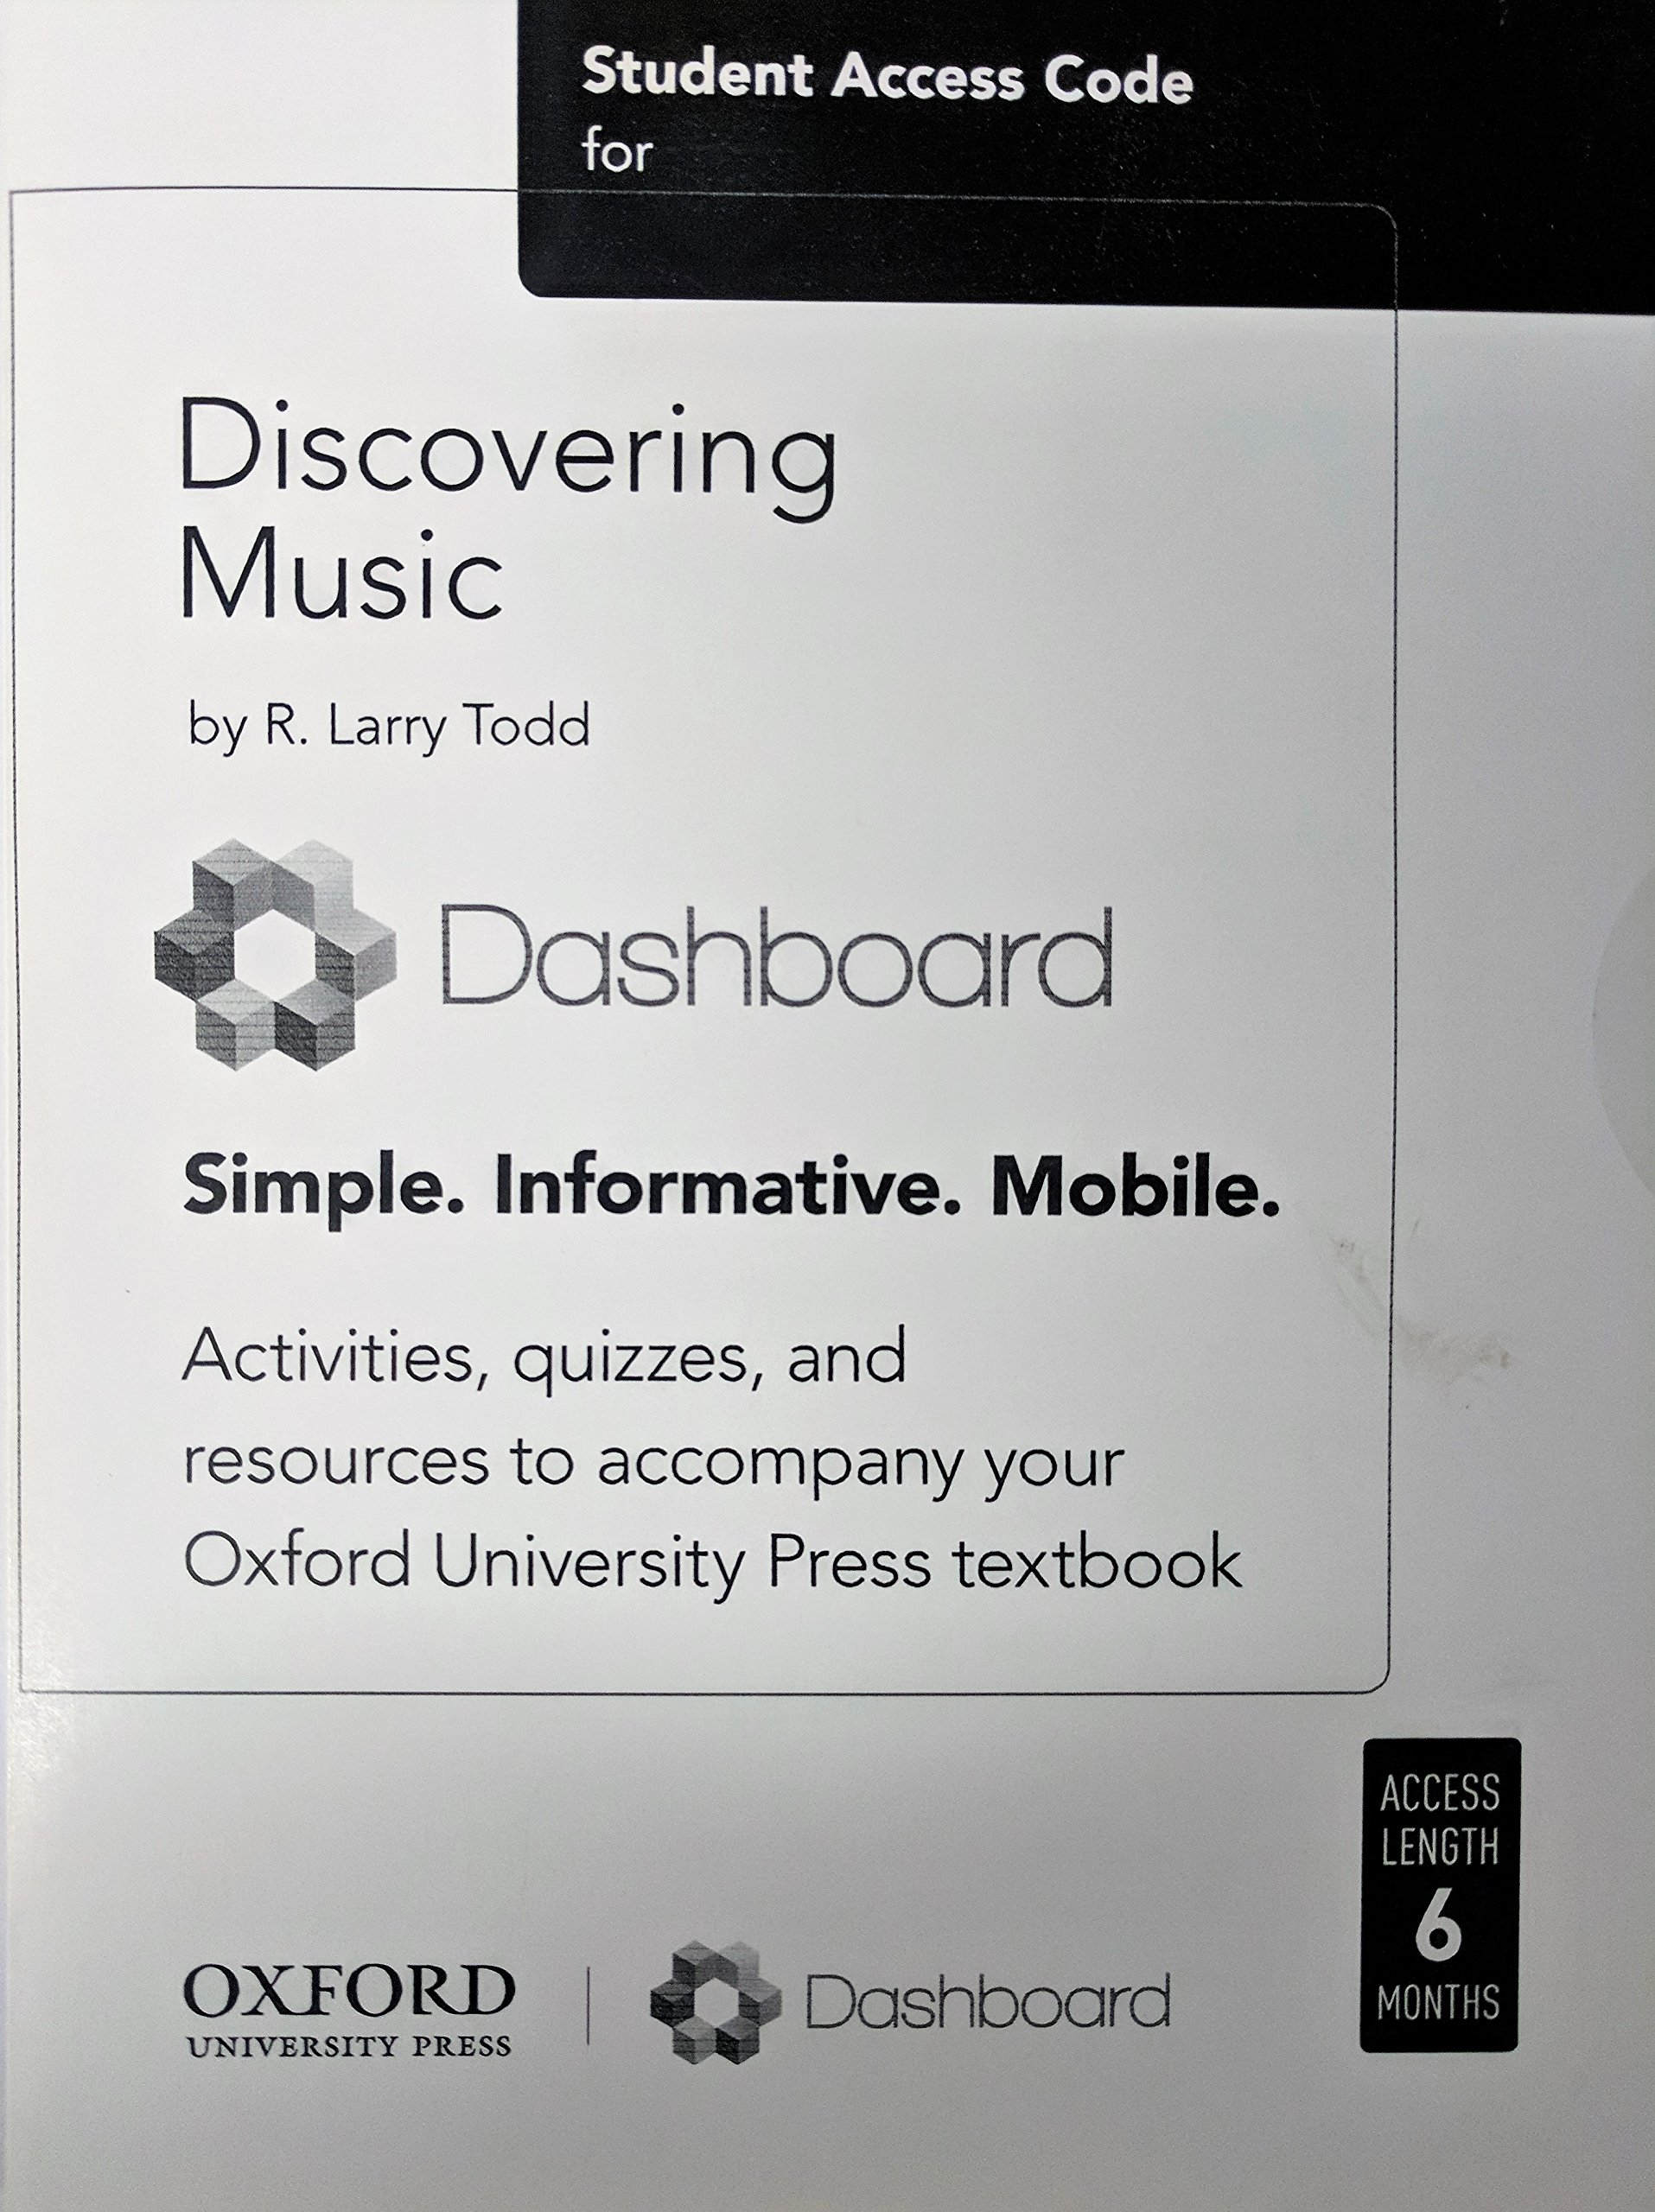 Download Student Access Code for Discovering Music DASHBOARD pdf epub